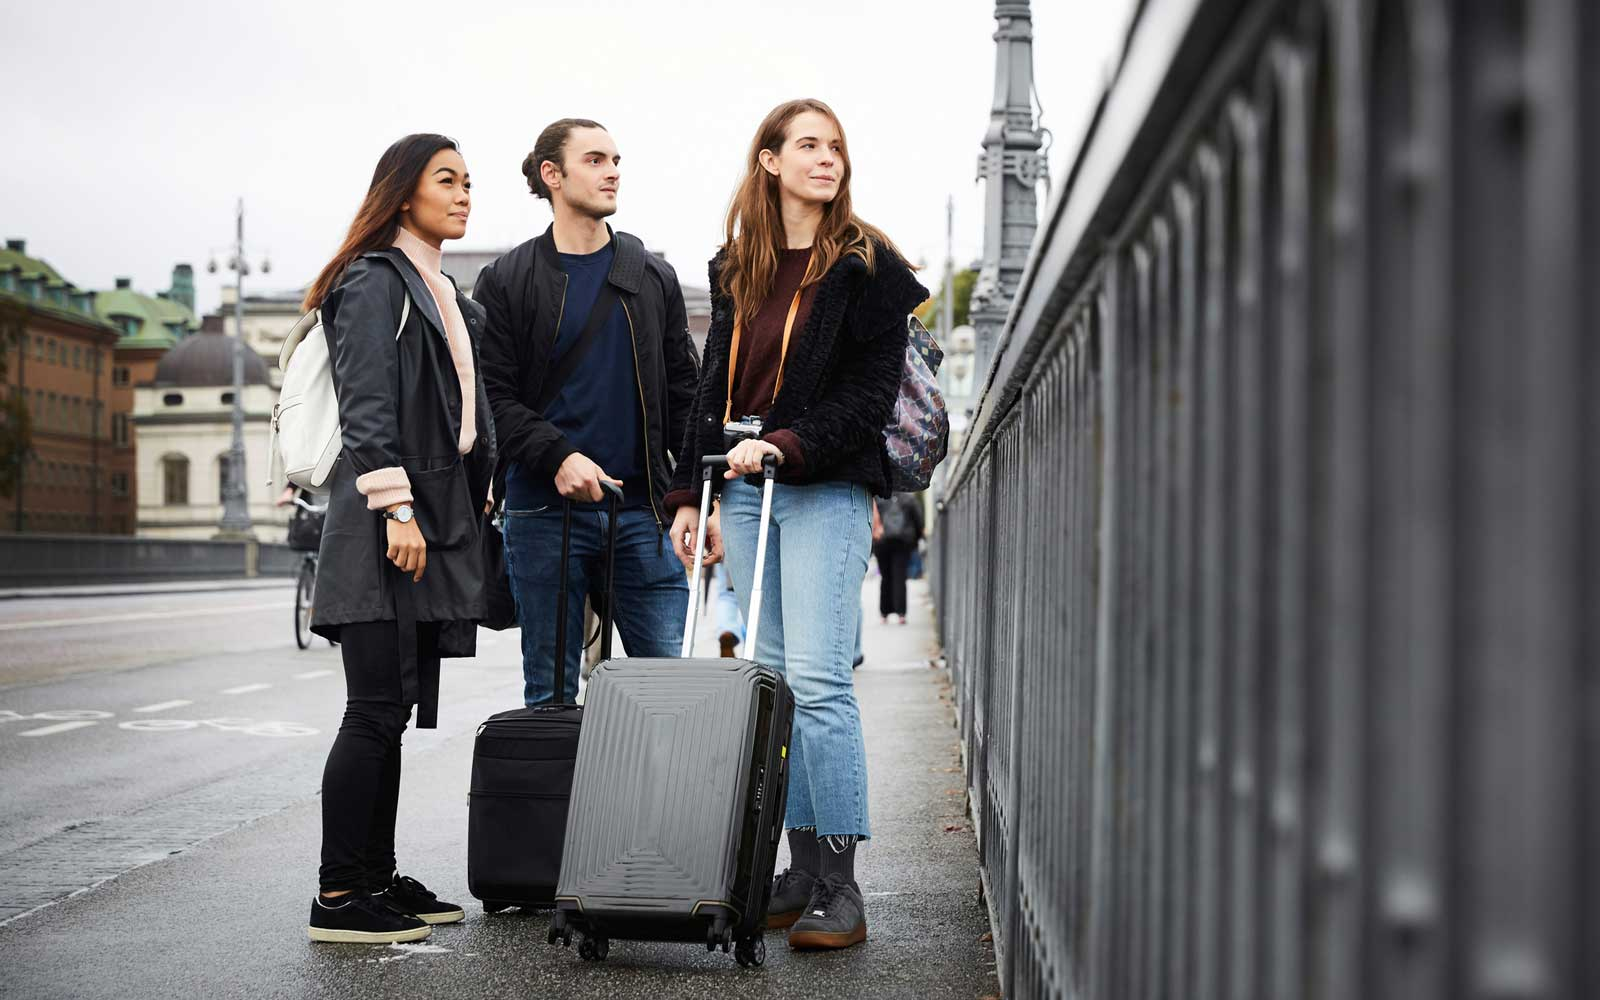 57 Percent of Millennials Would Rather Travel Than Have Sex, According to New Survey